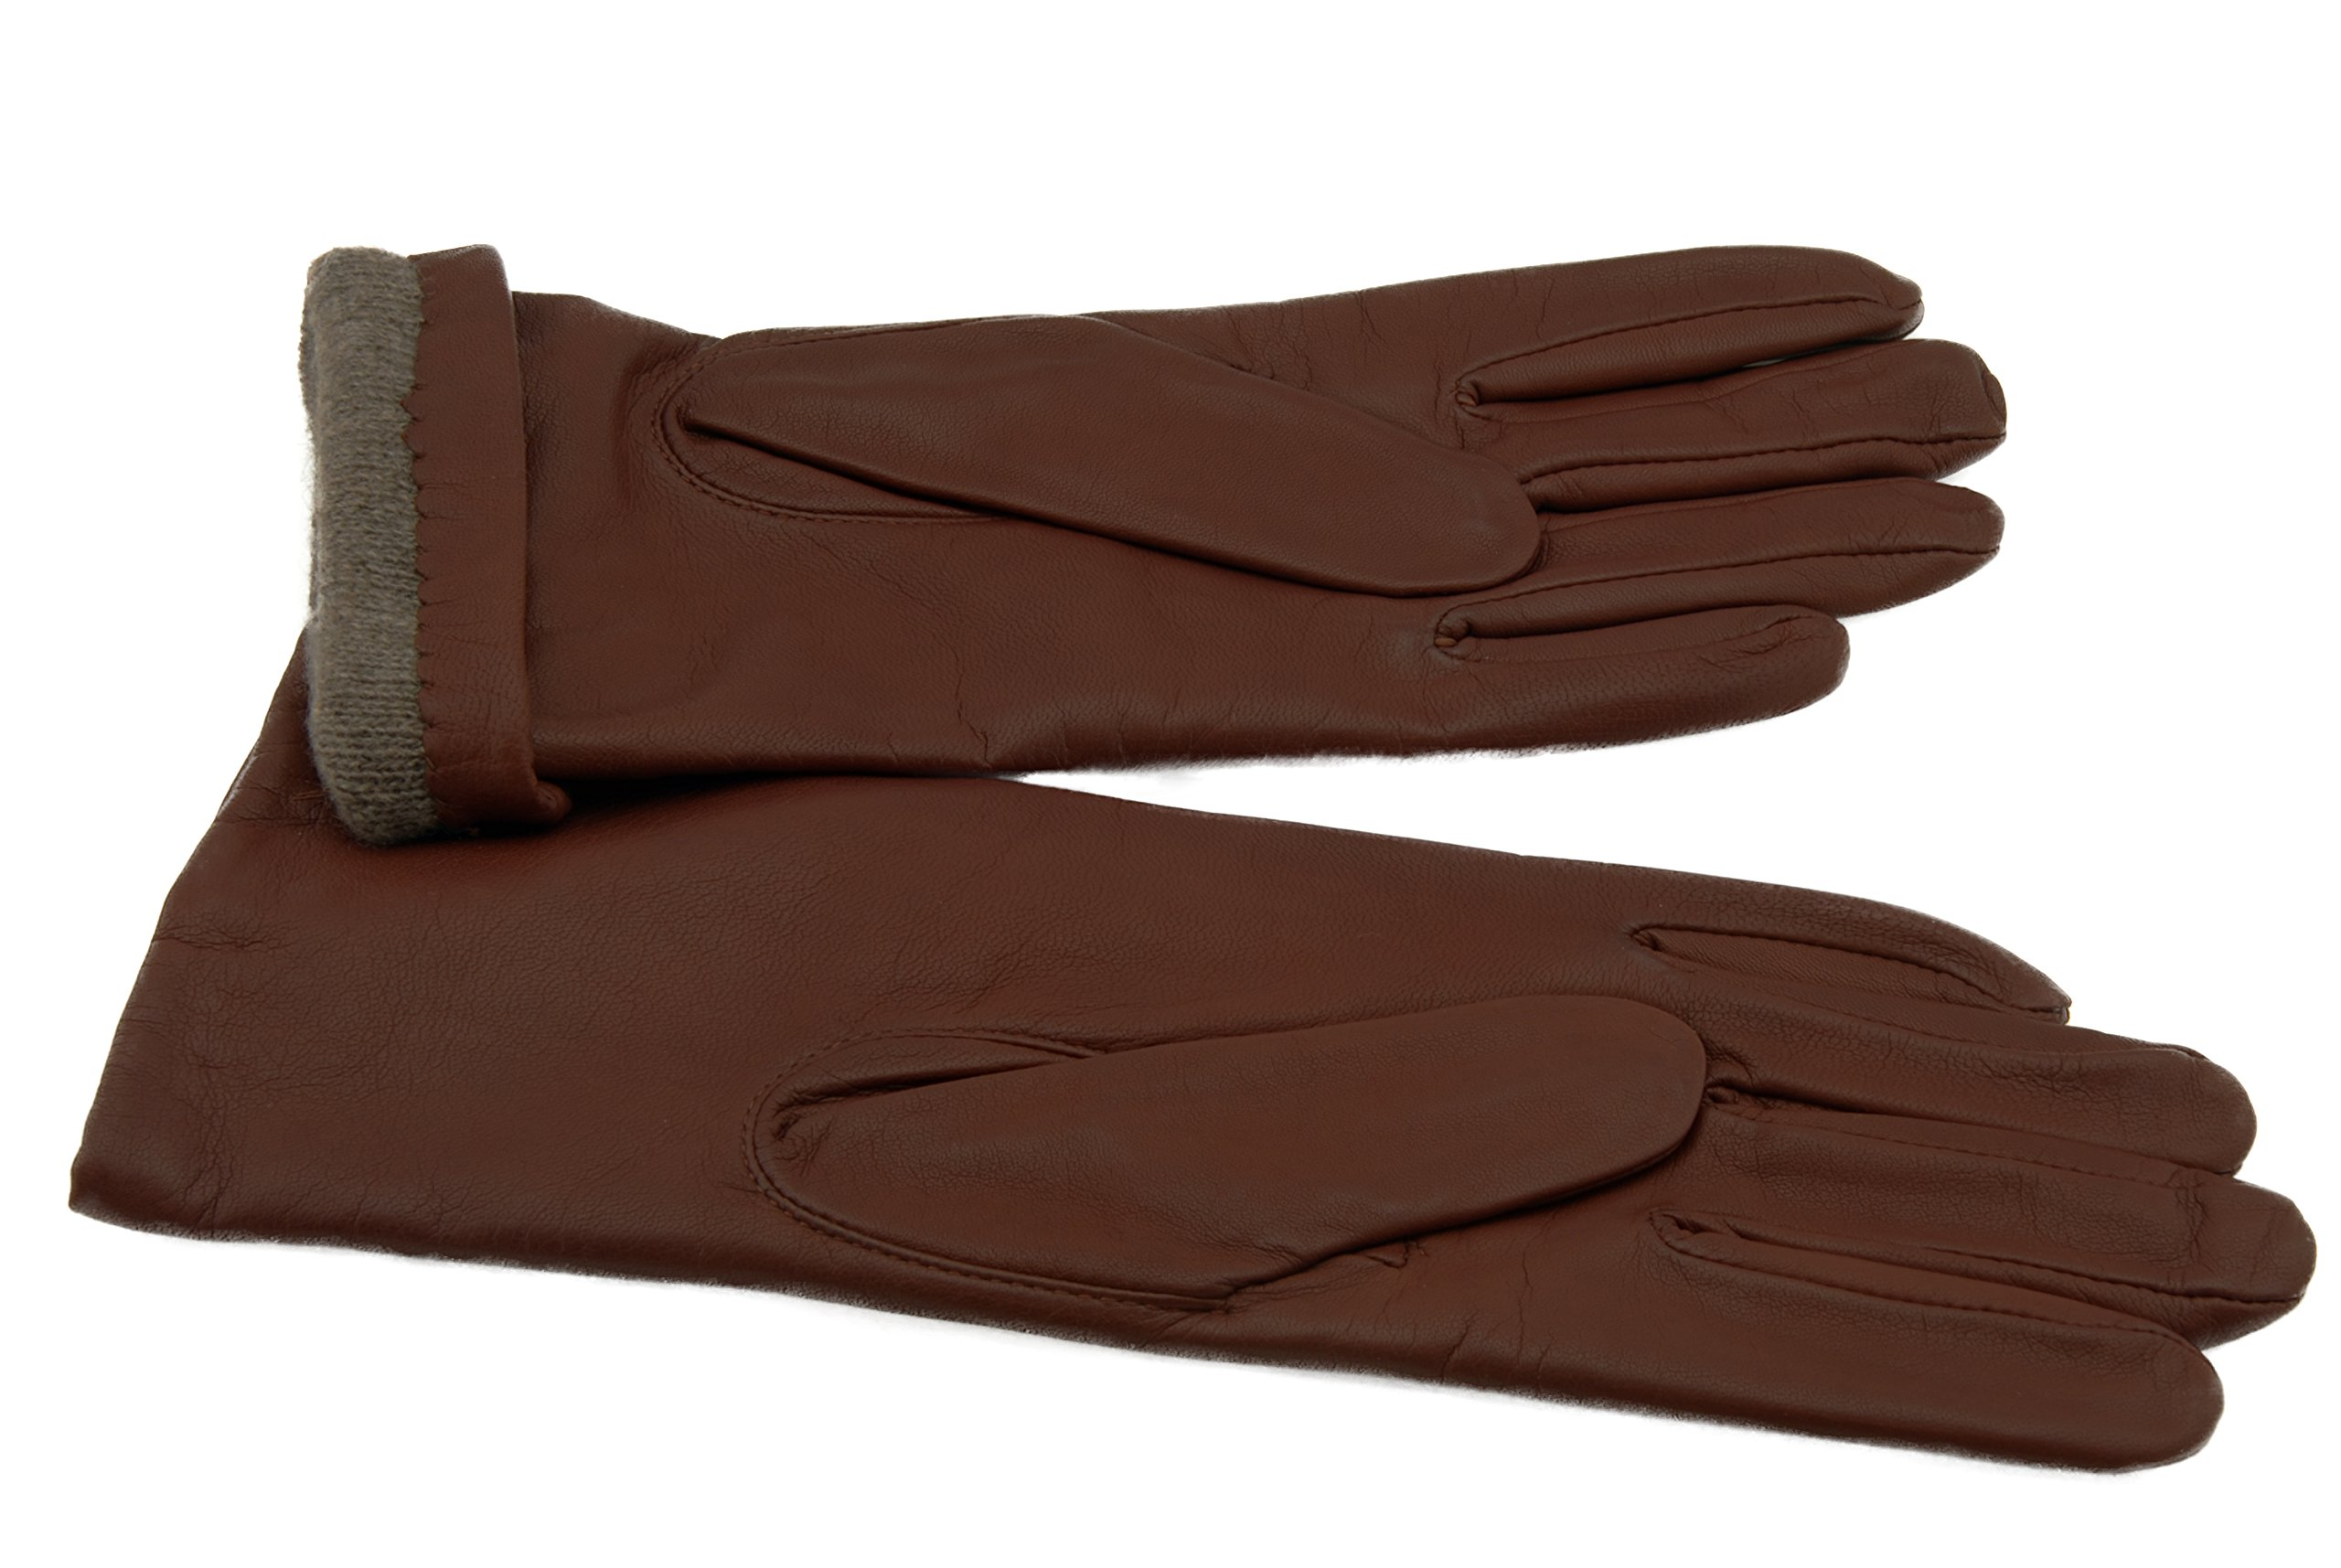 GRANDOE Women's MELODY Sheepskin Leather Glove, Warm Cashmere Lined 3 btn length (Tan, X-Large)